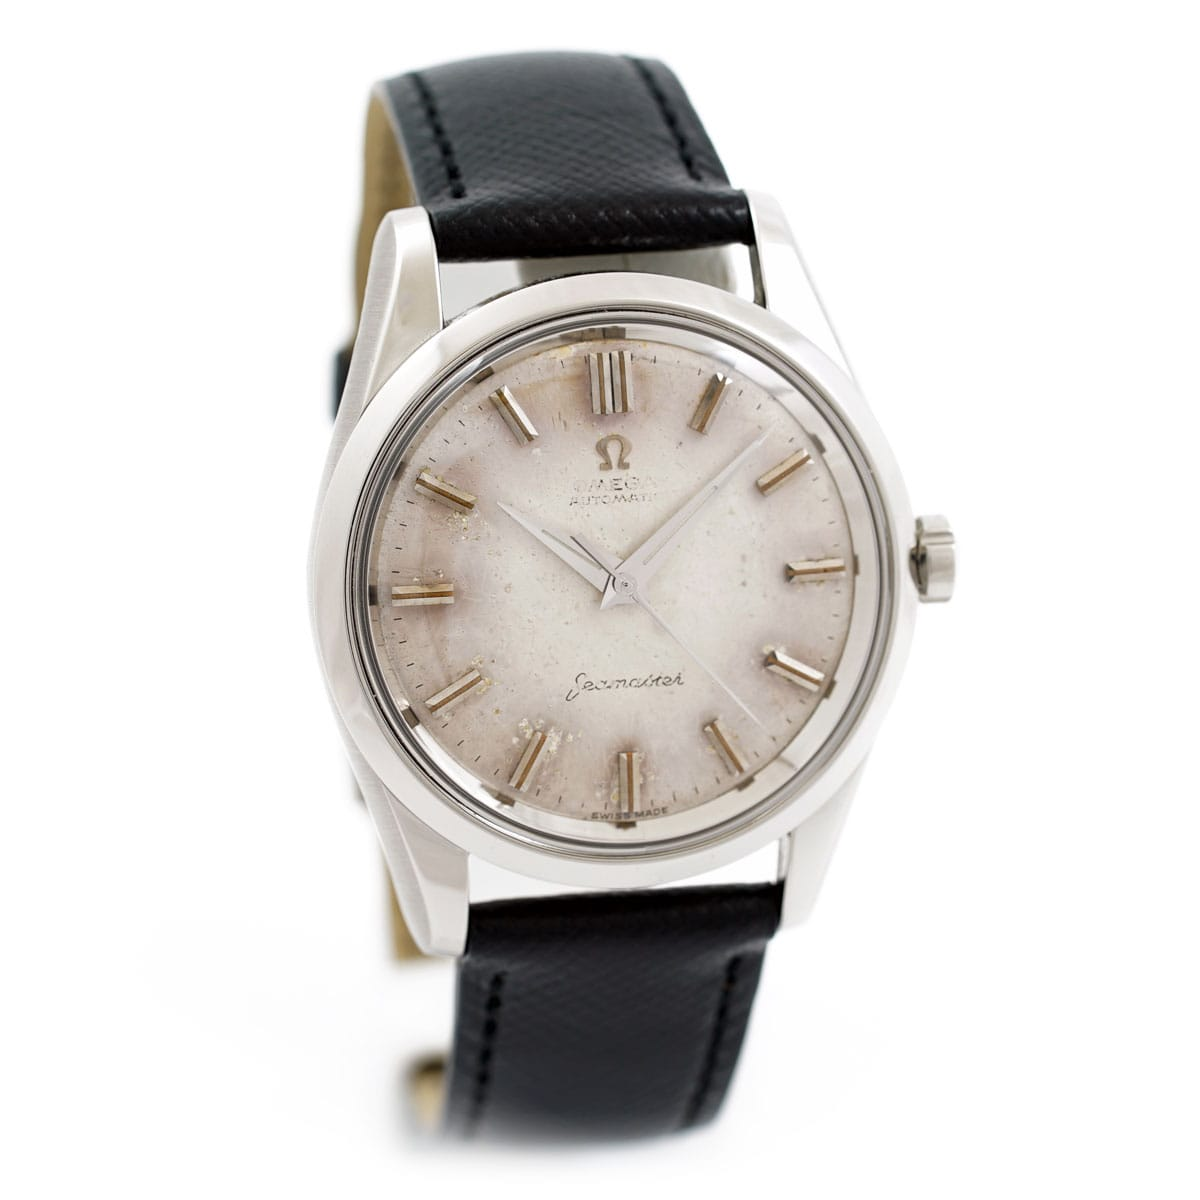 108741-Omega-Seamaster-montres-occasion-seconde-main-lionel-meylan-vevey